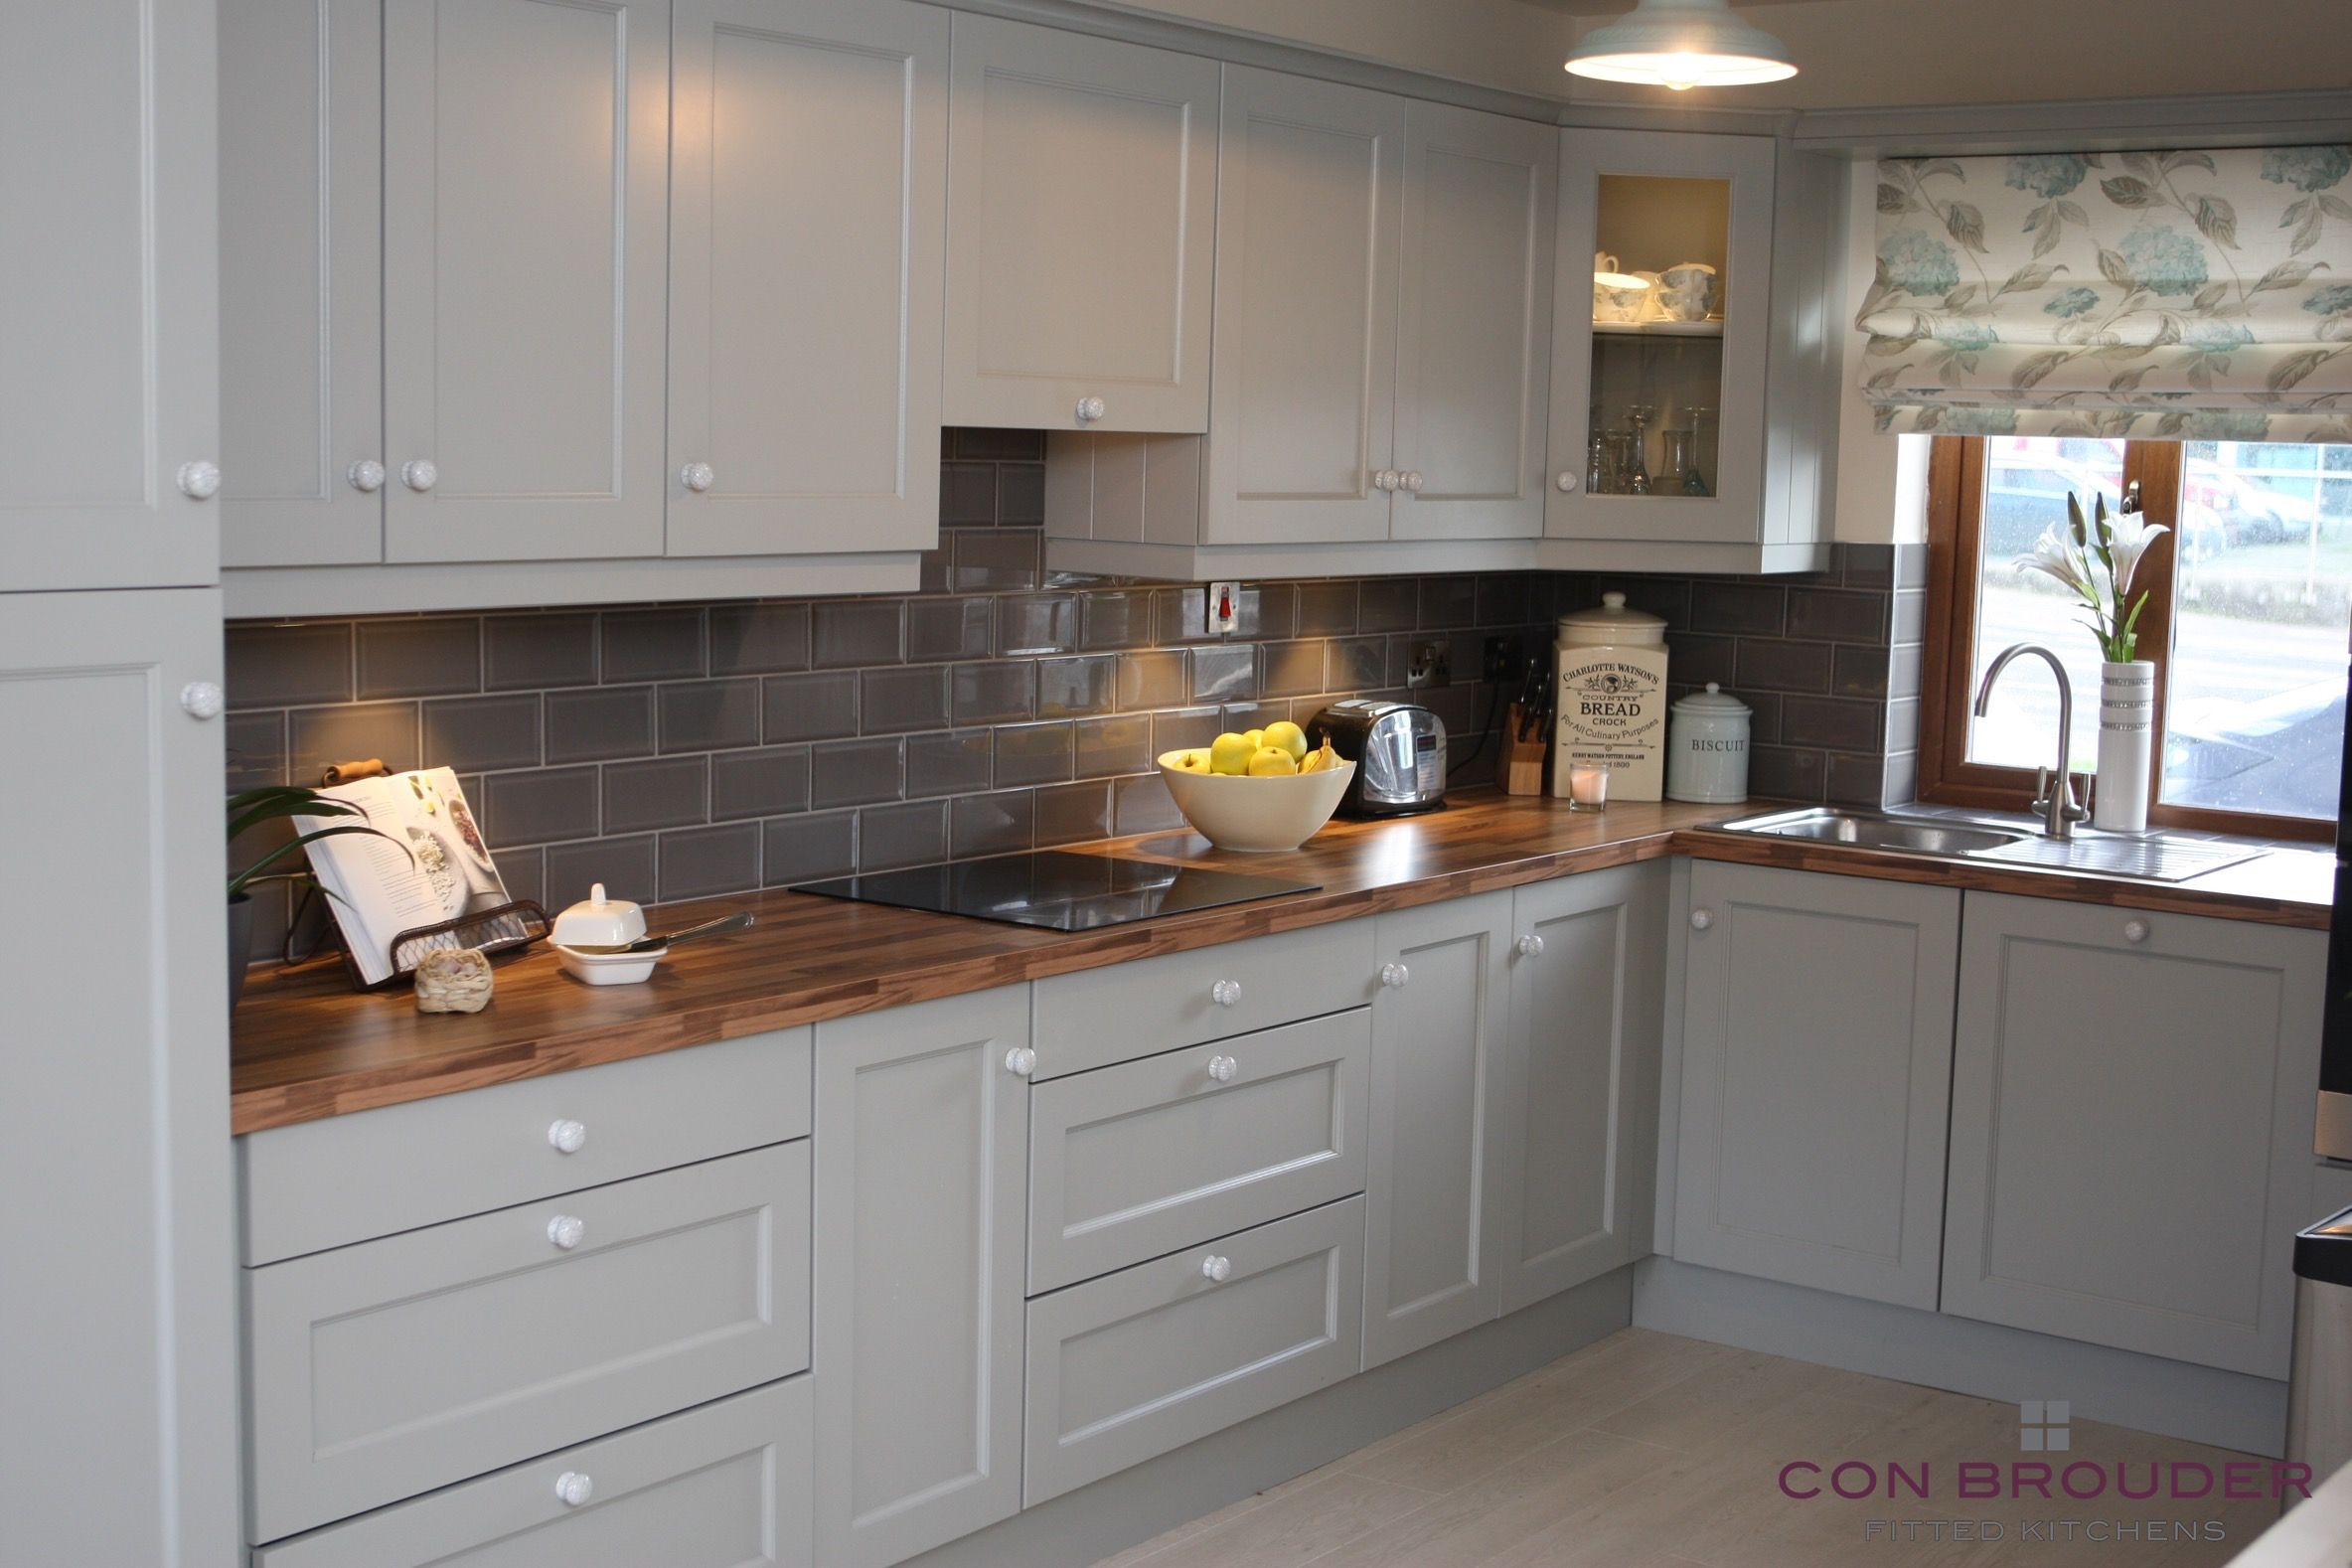 irish fitted kitchens designs you can love and use. | con brouder